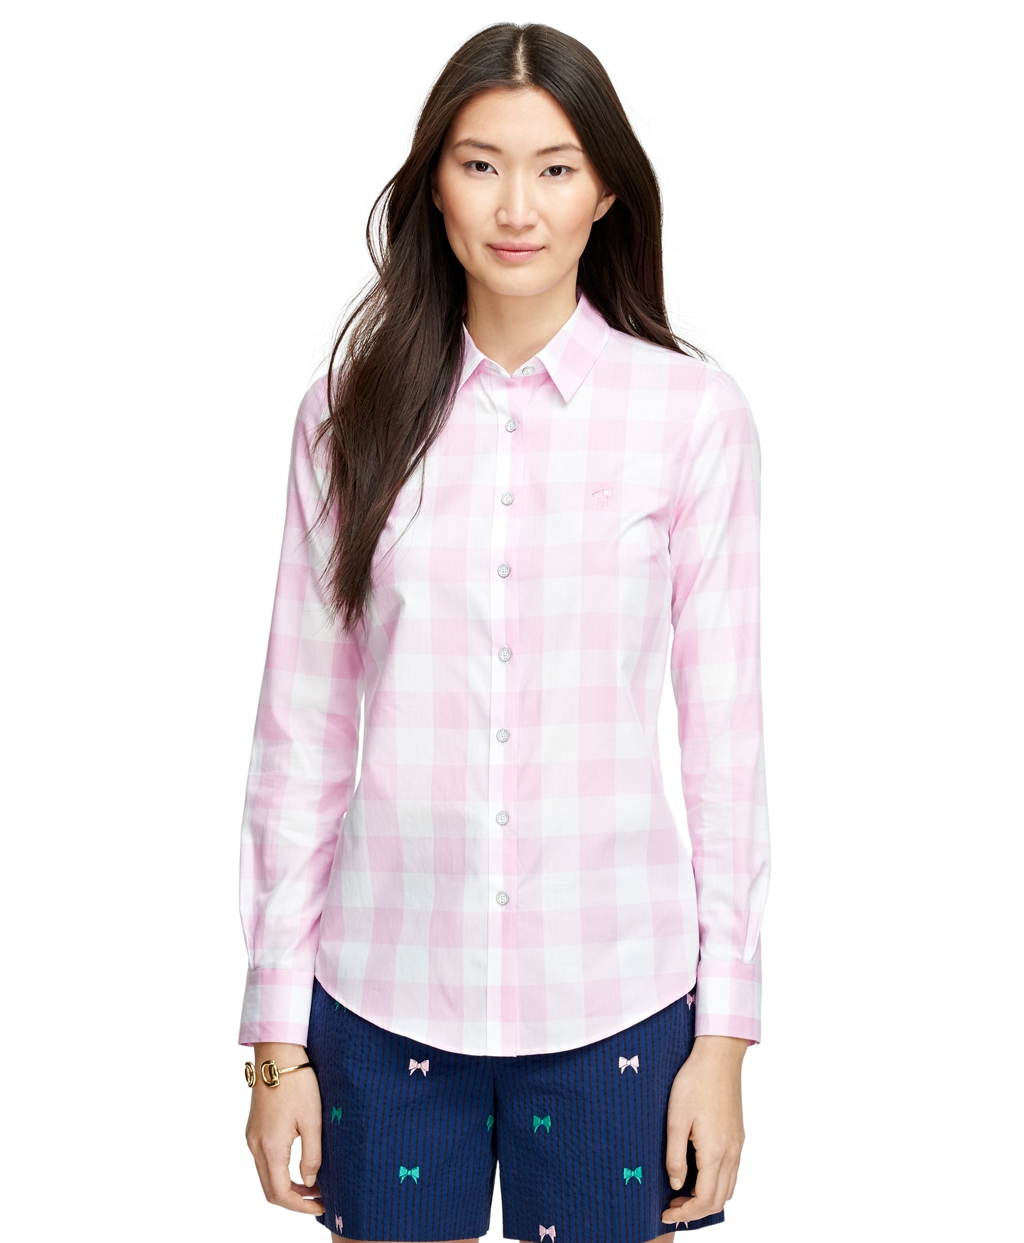 Women 39 s red fleece teal gingham shirt brooks brothers for Pink gingham shirt ladies